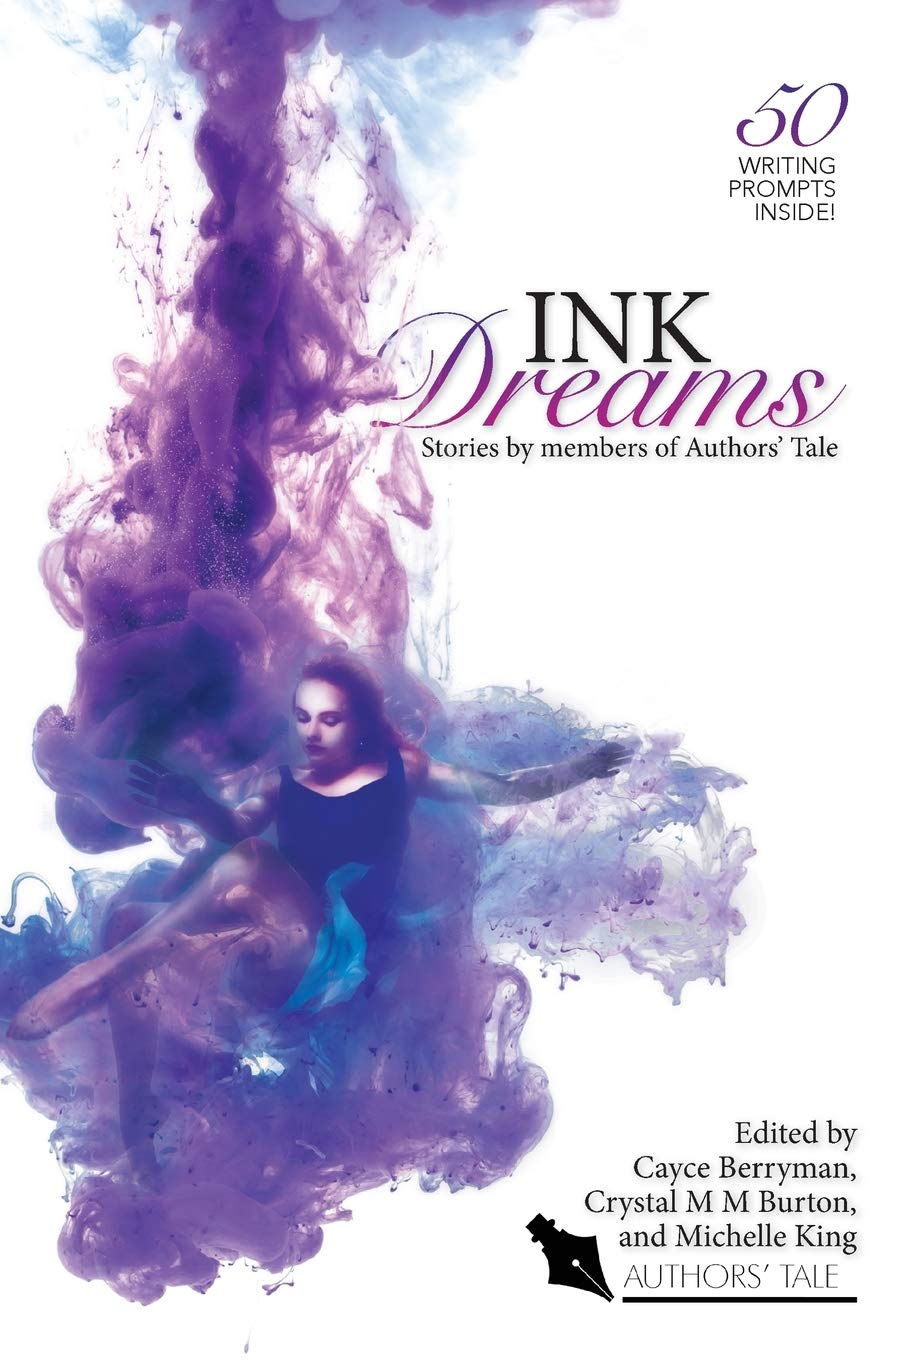 Ink Dreams